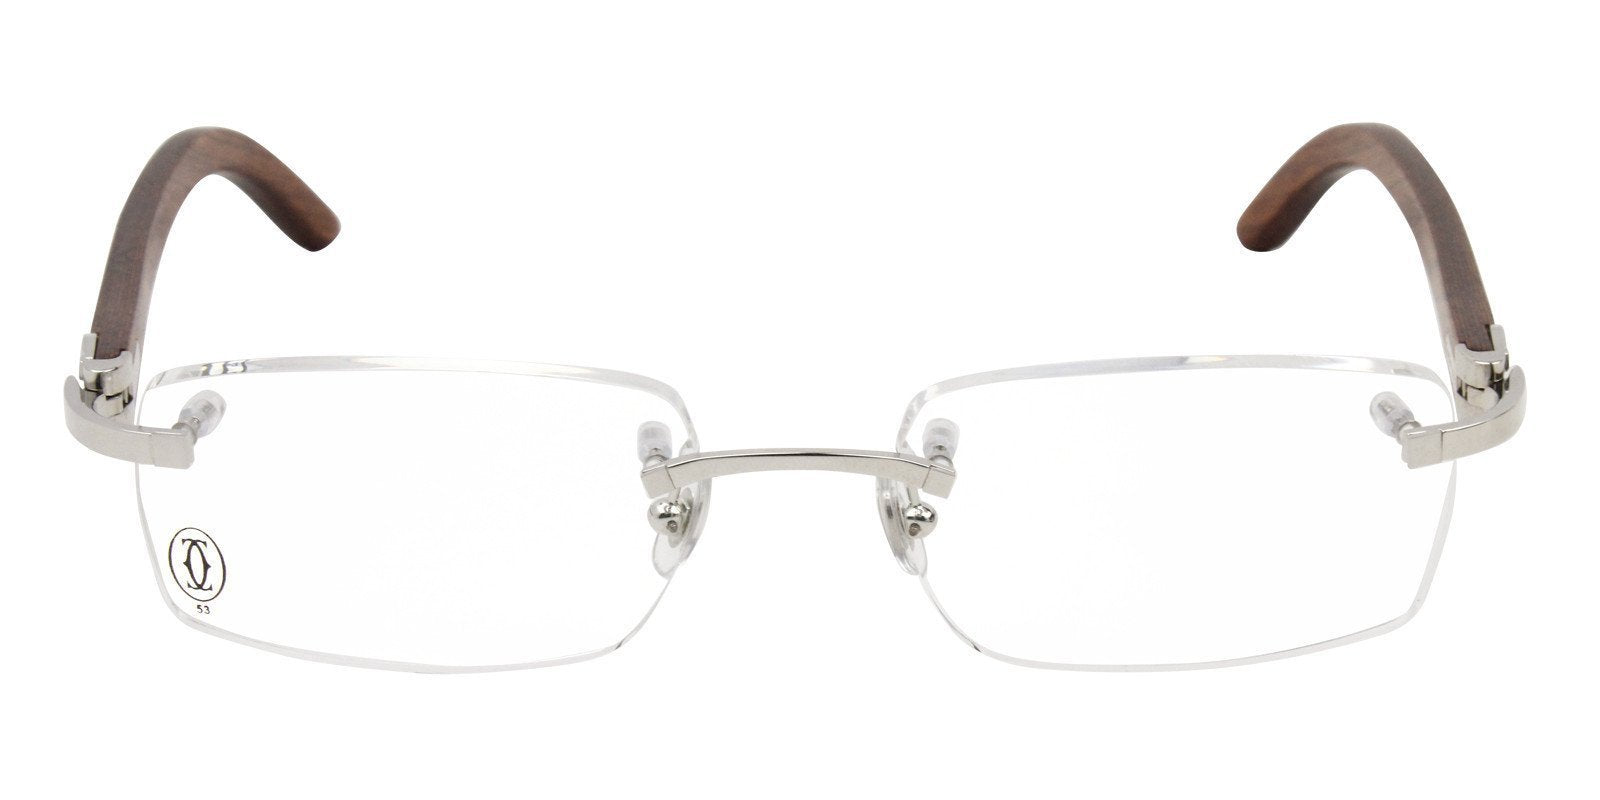 Cartier - C Decor Silver Rimless Men Eyeglasses - 53mm-Eyeglasses-Designer Eyes